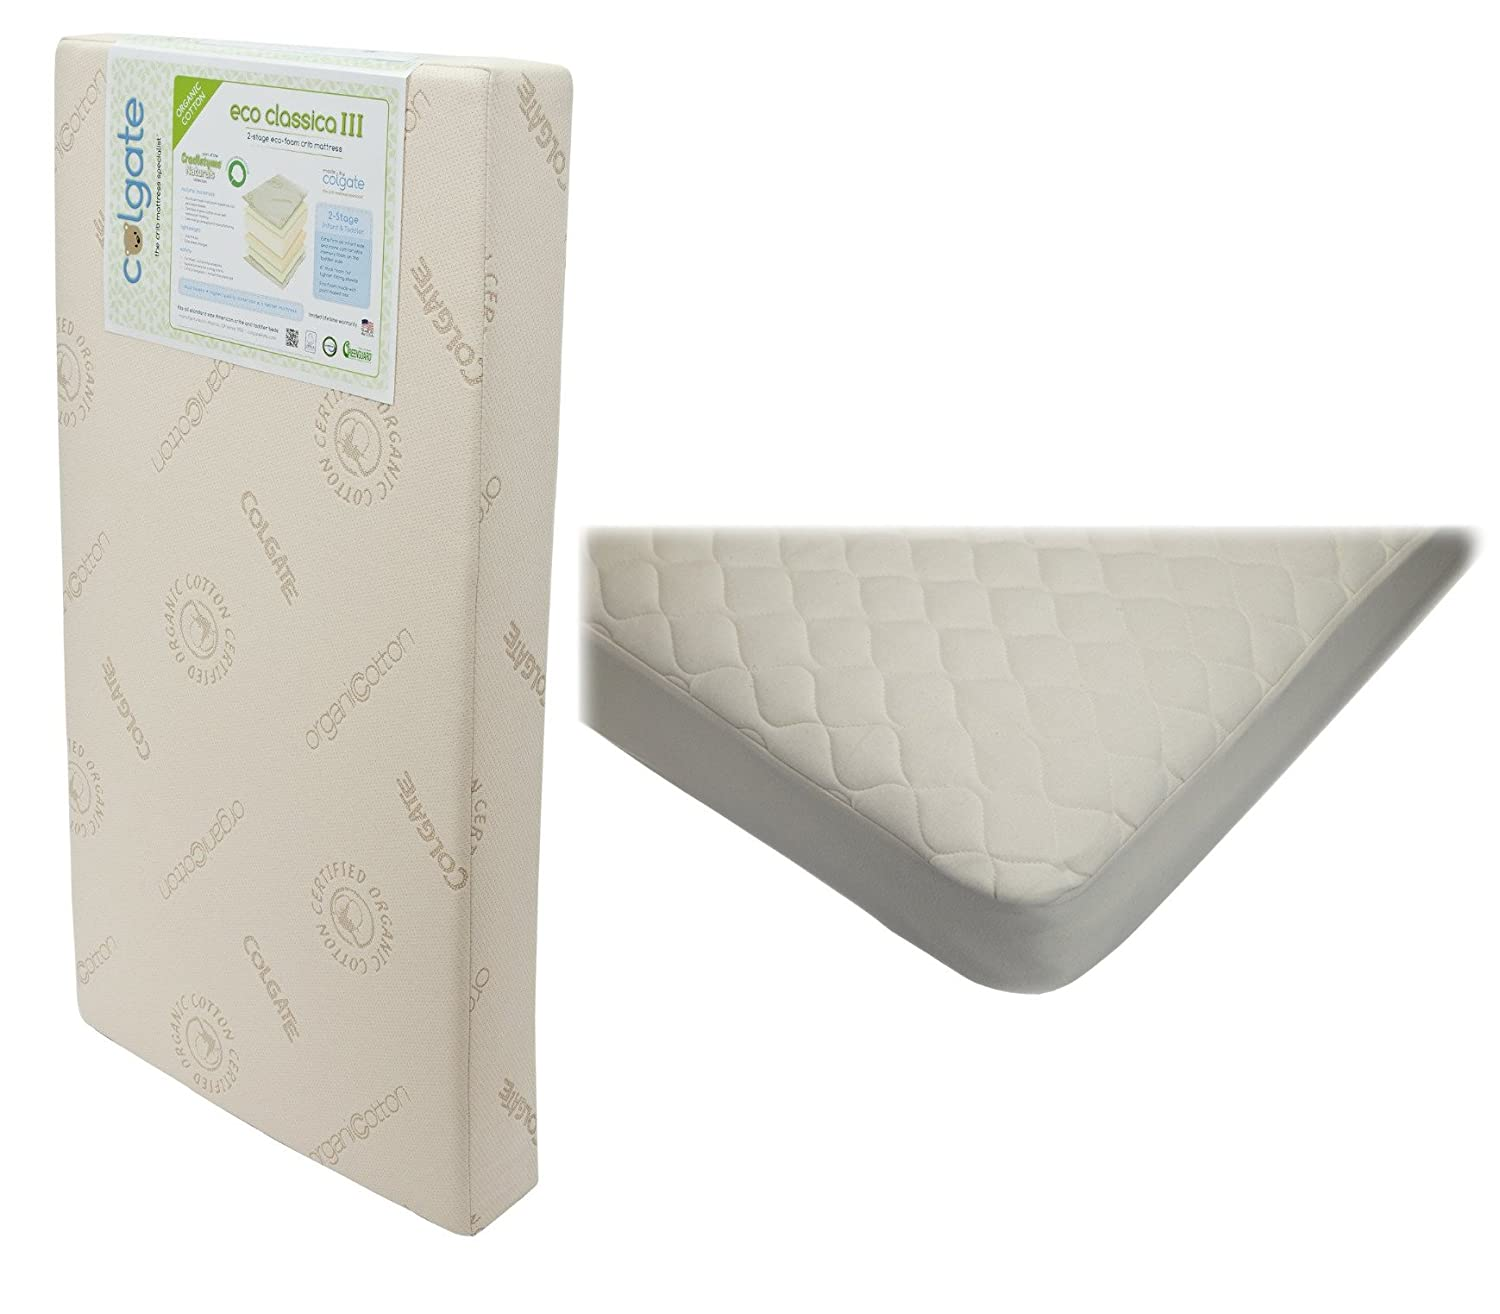 and sided friendlier colgate stage eco cribs mattresses firmness crib classica iii toddler dual mattress